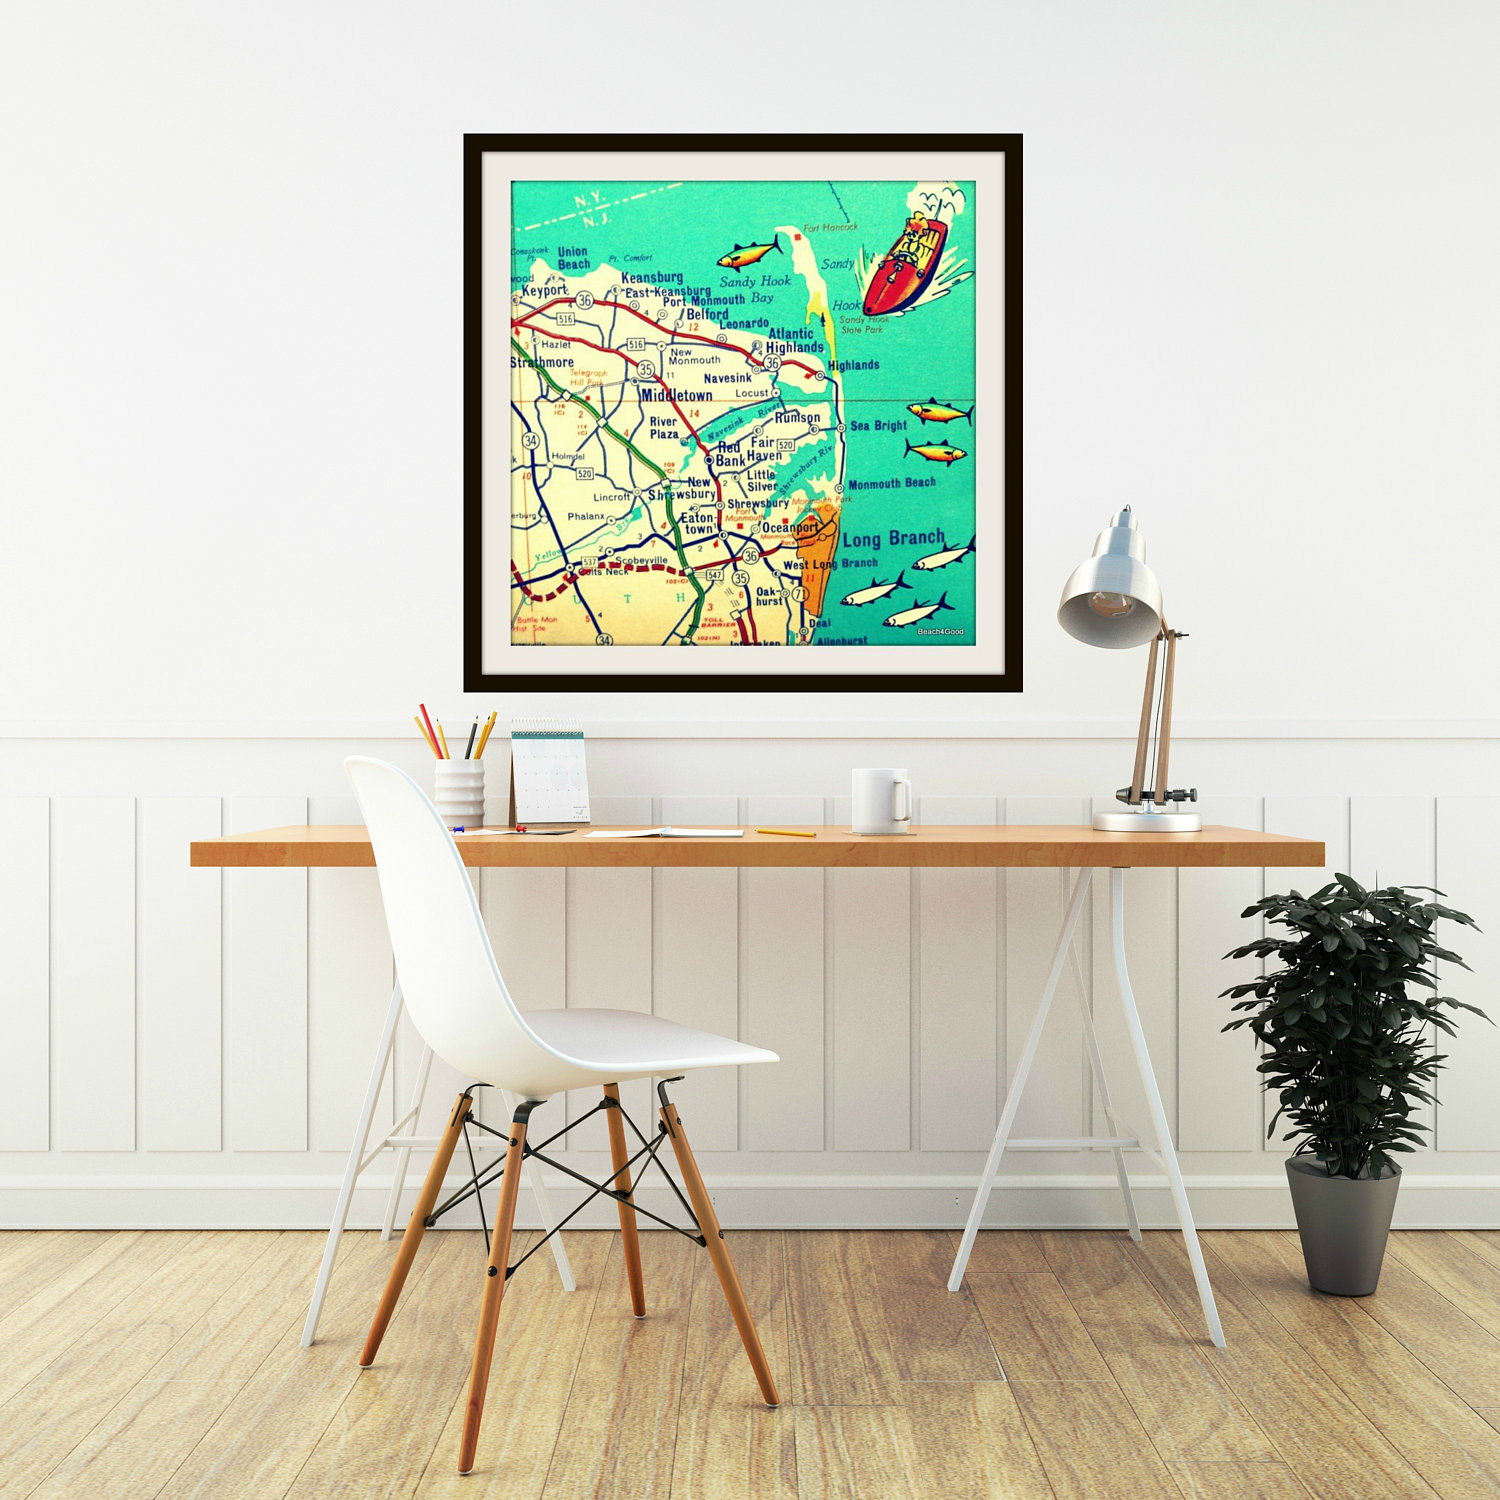 Jersey shore map travel gift new jersey gift vintage sandy request a custom order and have something made just for you negle Choice Image